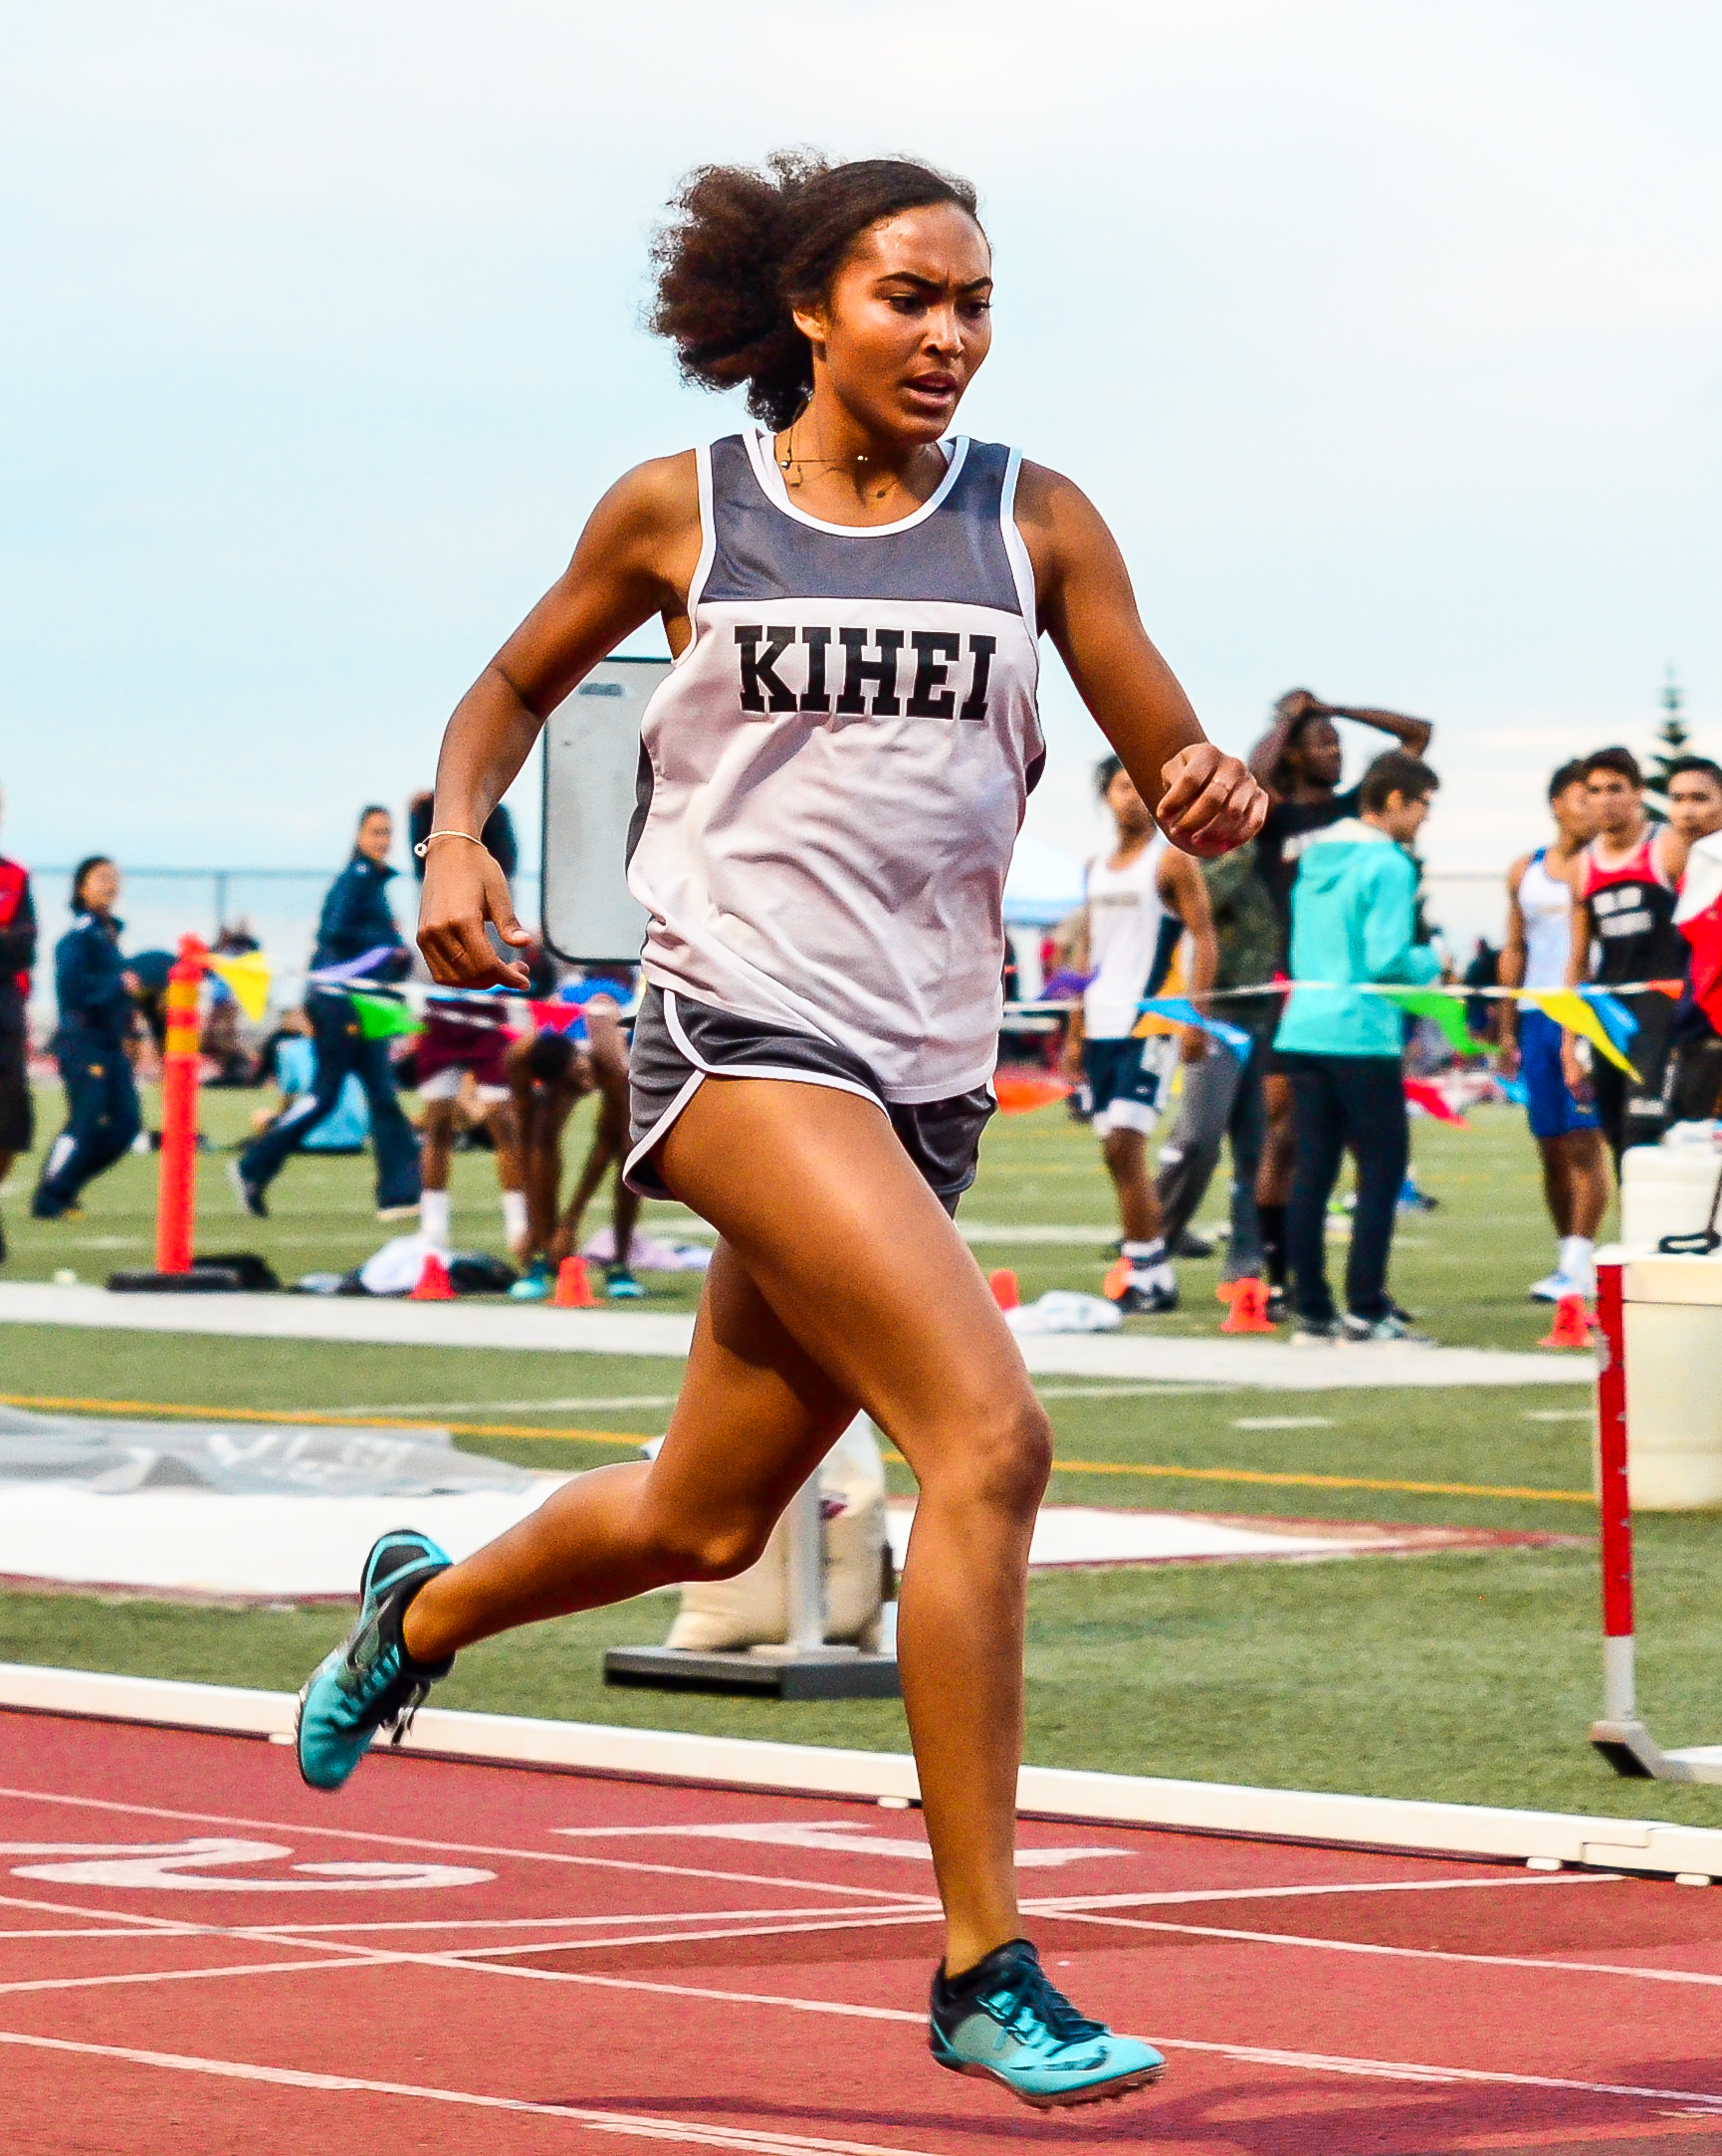 Kihei Charter's Maya Reynolds earn the MIL's only gold medal in the girls division, coming in the 400-meter dash. Photo by Rodney S. Yap.